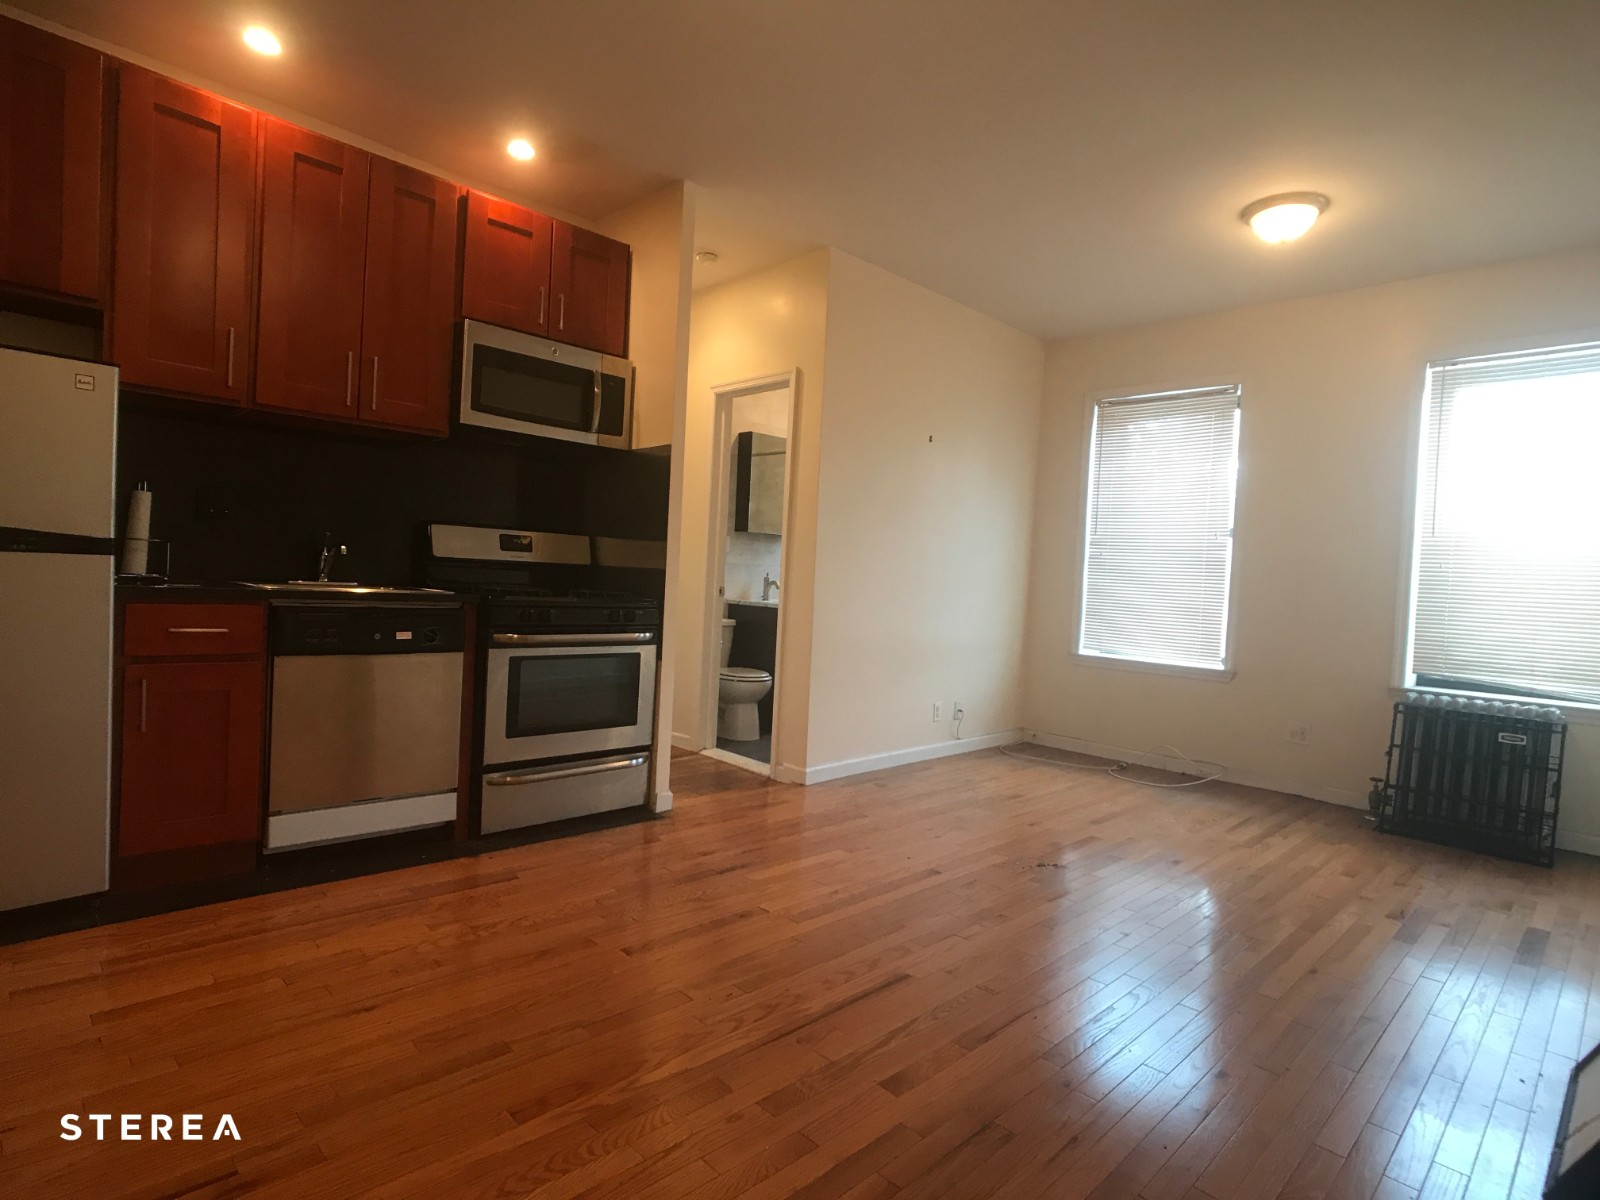 37-06 69th Street, Apt G1, Queens, New York 11377